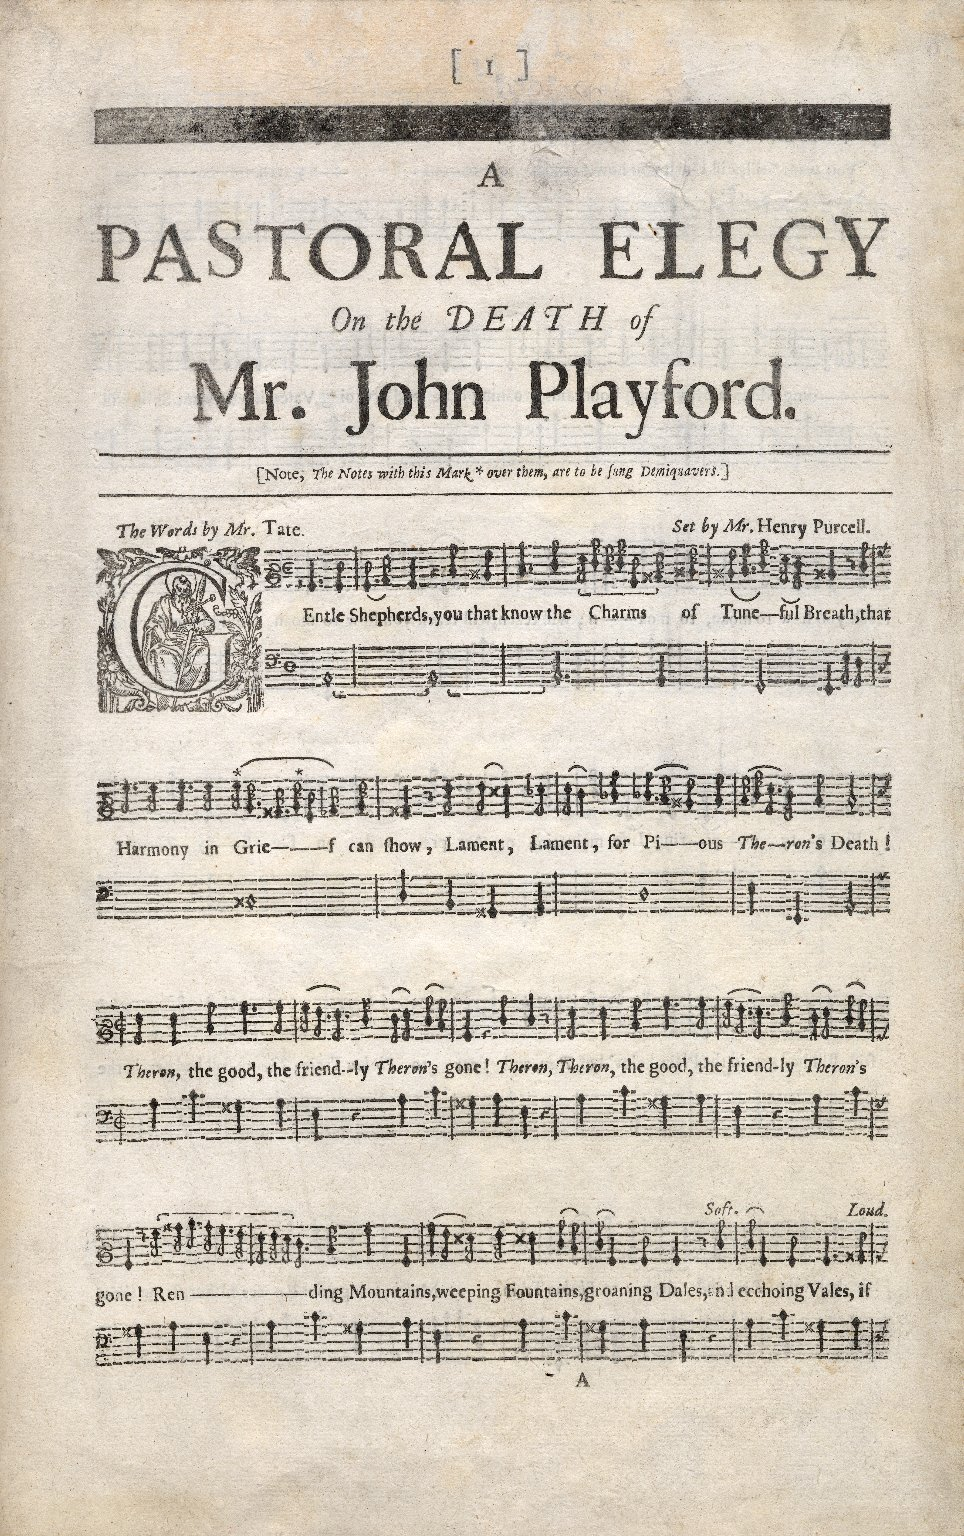 A pastoral elegy on the death of Mr. John Playford.